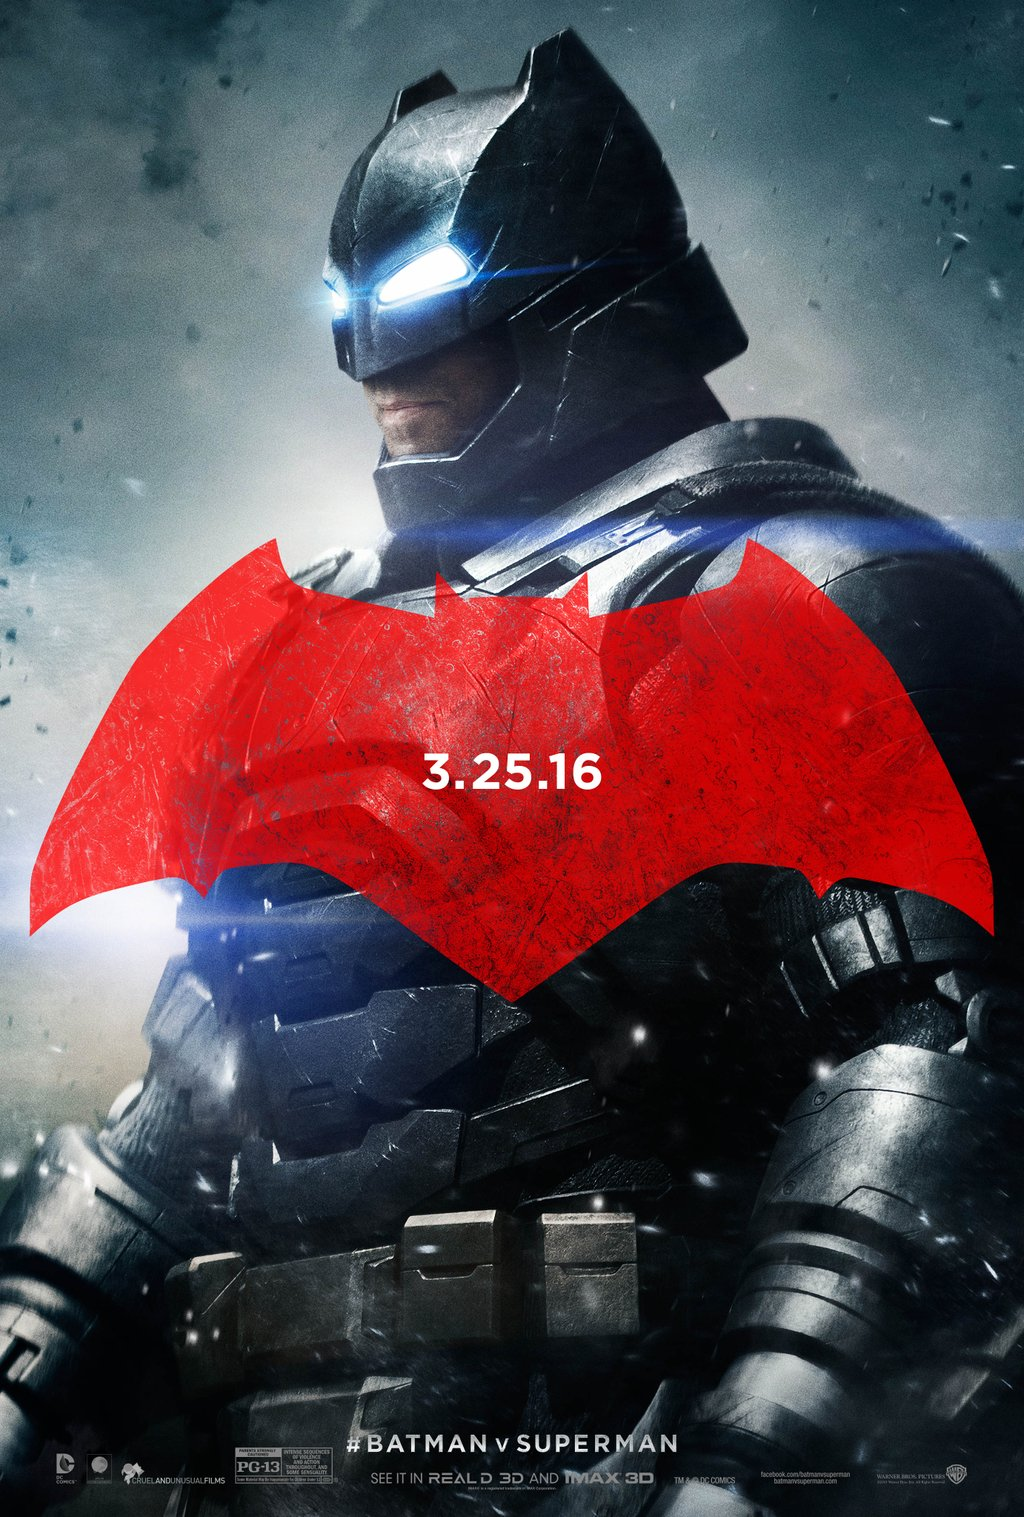 Batman v Superman: Dawn of Justice posters